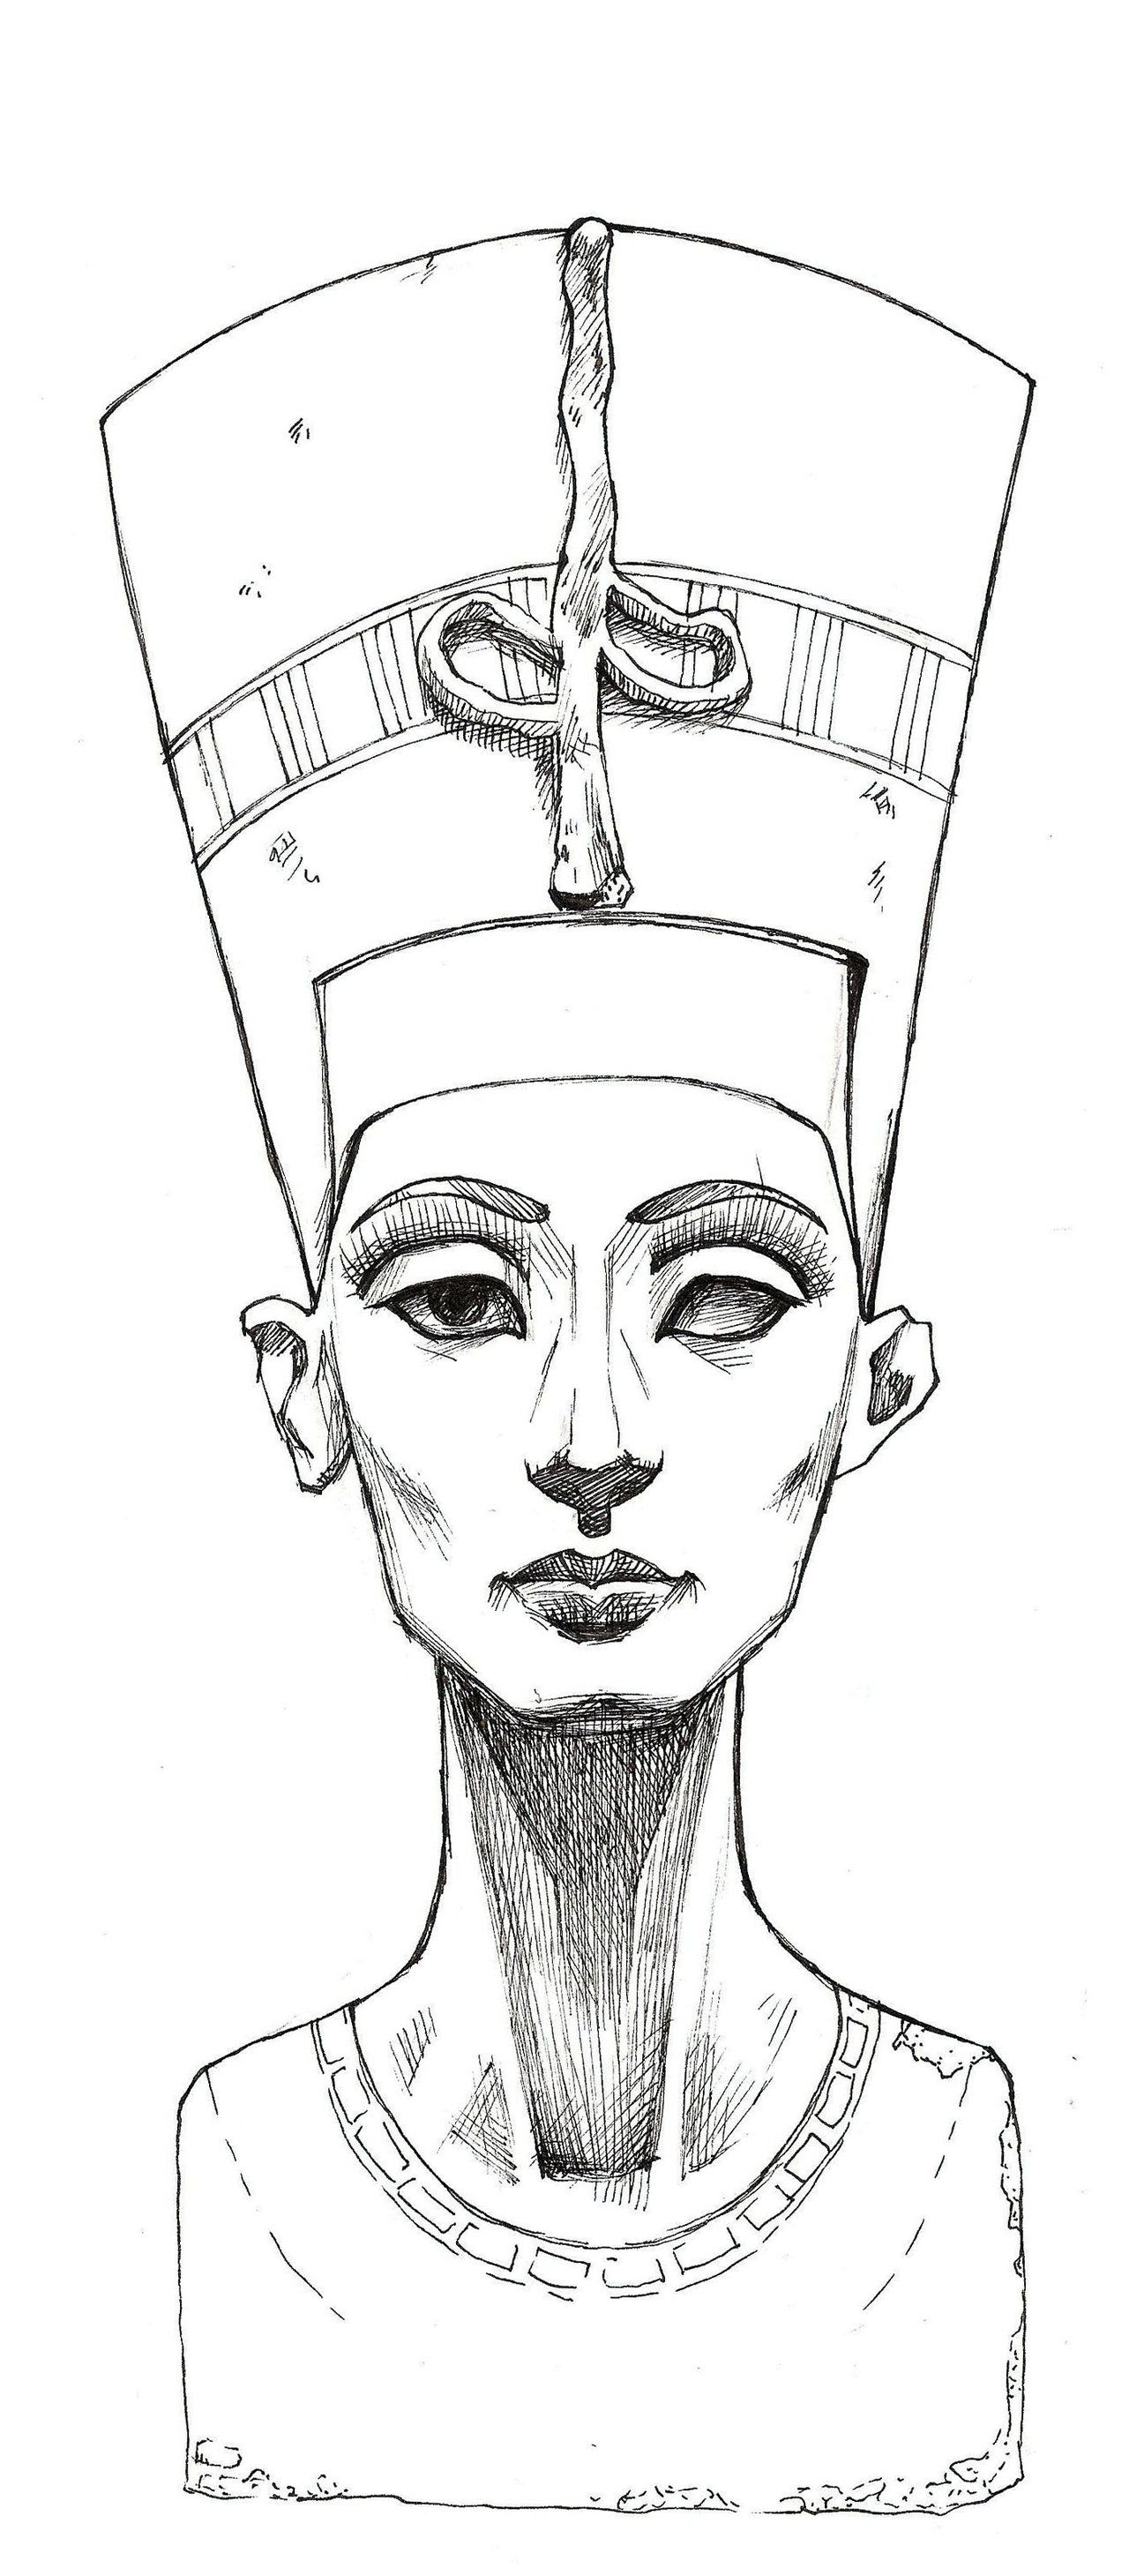 Here's What Nefertiti And Other Historical Figures Would